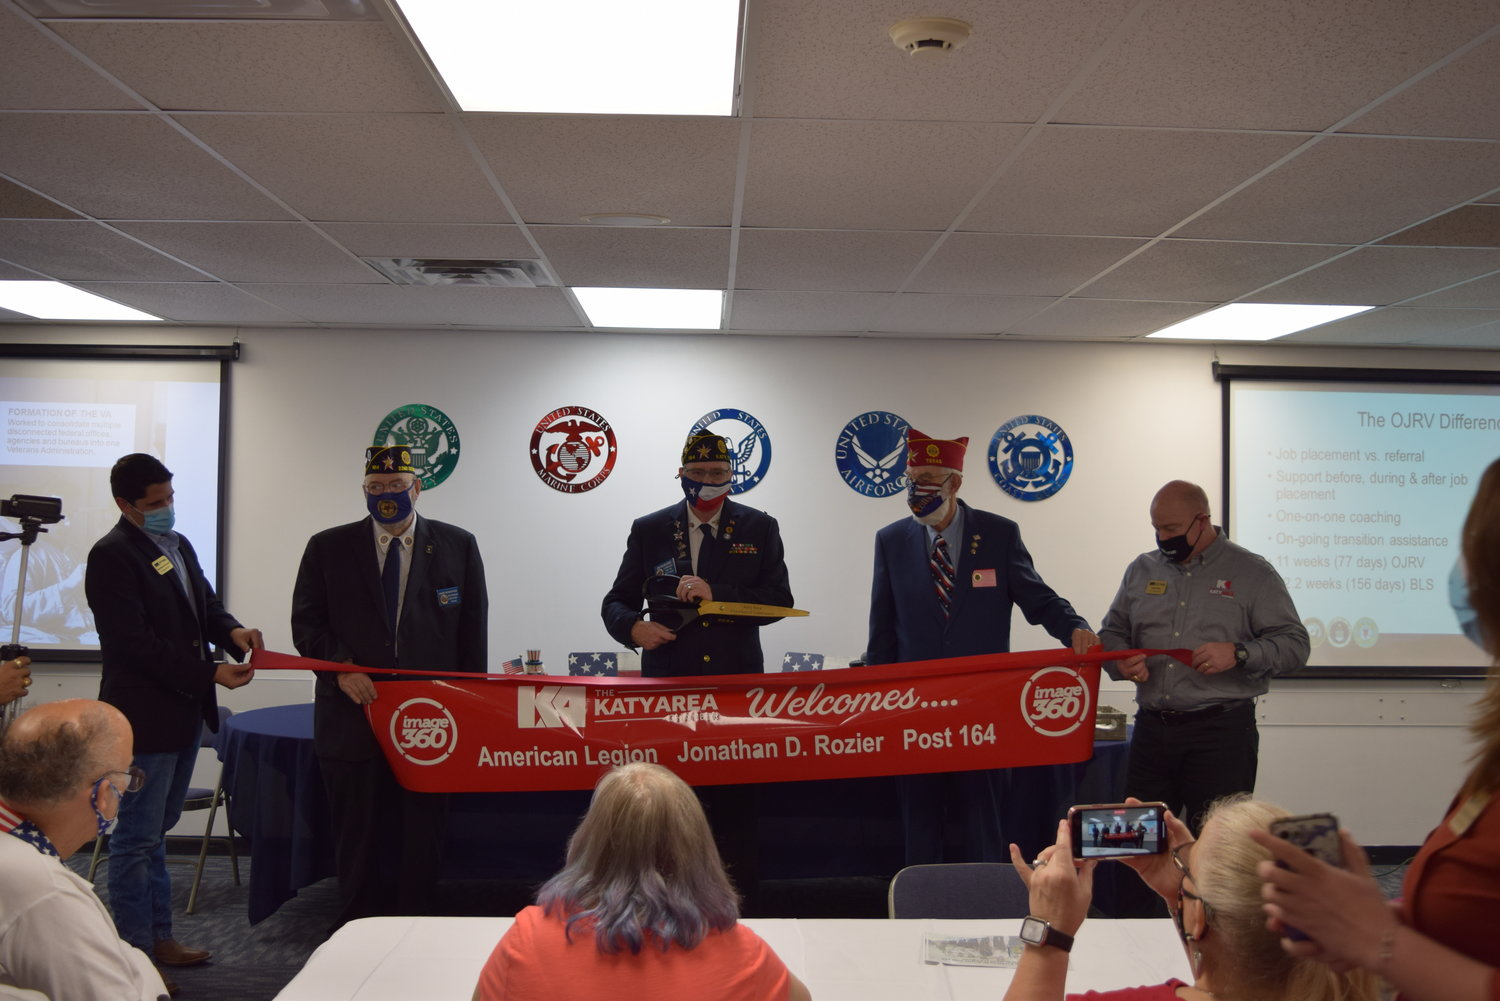 Representatives of American Legion Post 164 participate in a ribbon cutting for the Jonathan D. Rozier Legion Hall which was put on by the Katy Area Chamber of Commerce.